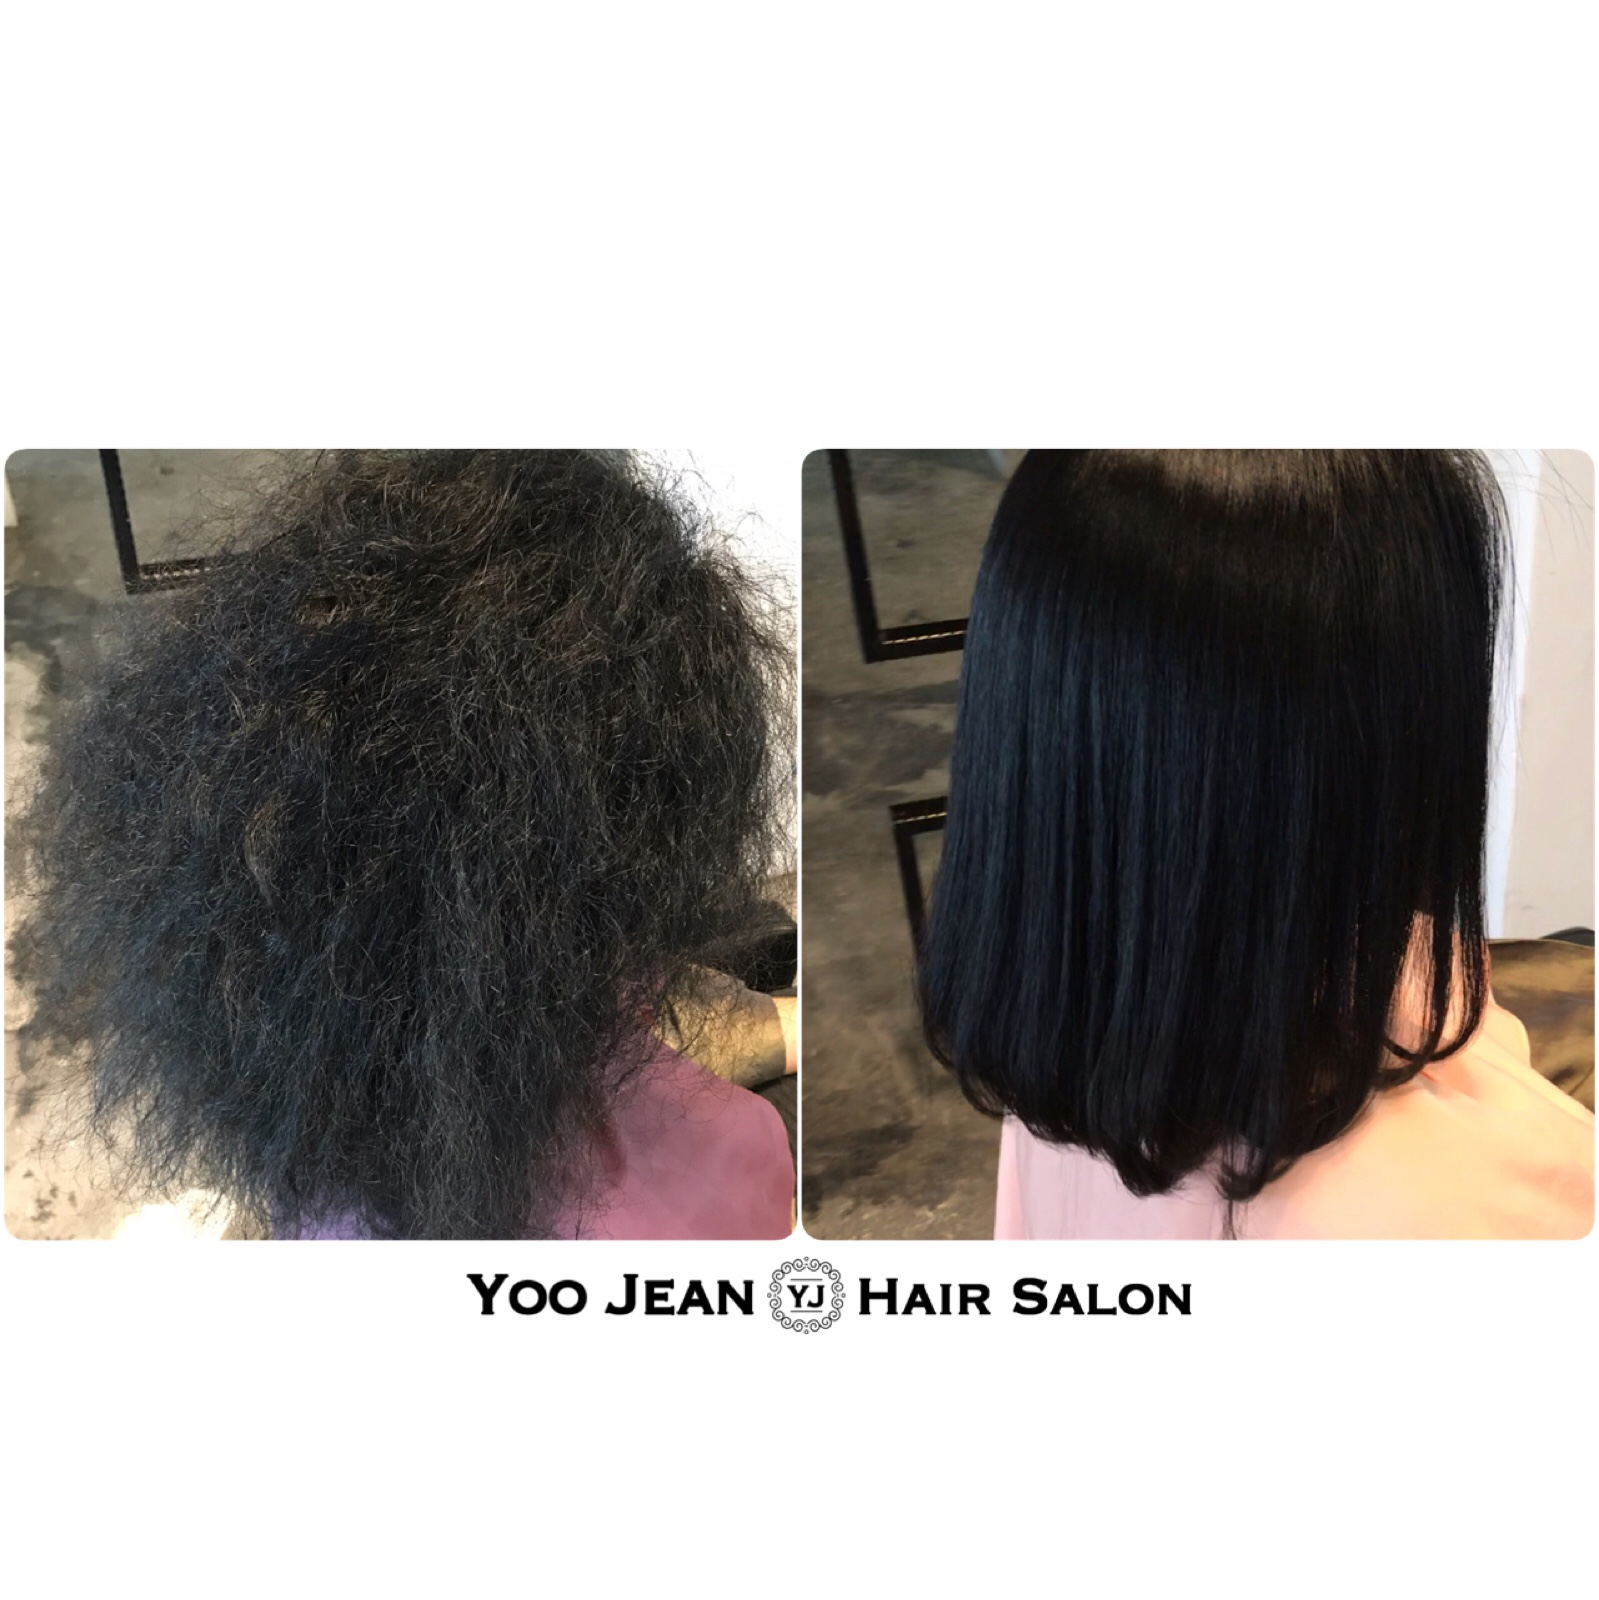 Magic Straight | Rebonding & Iron Perm